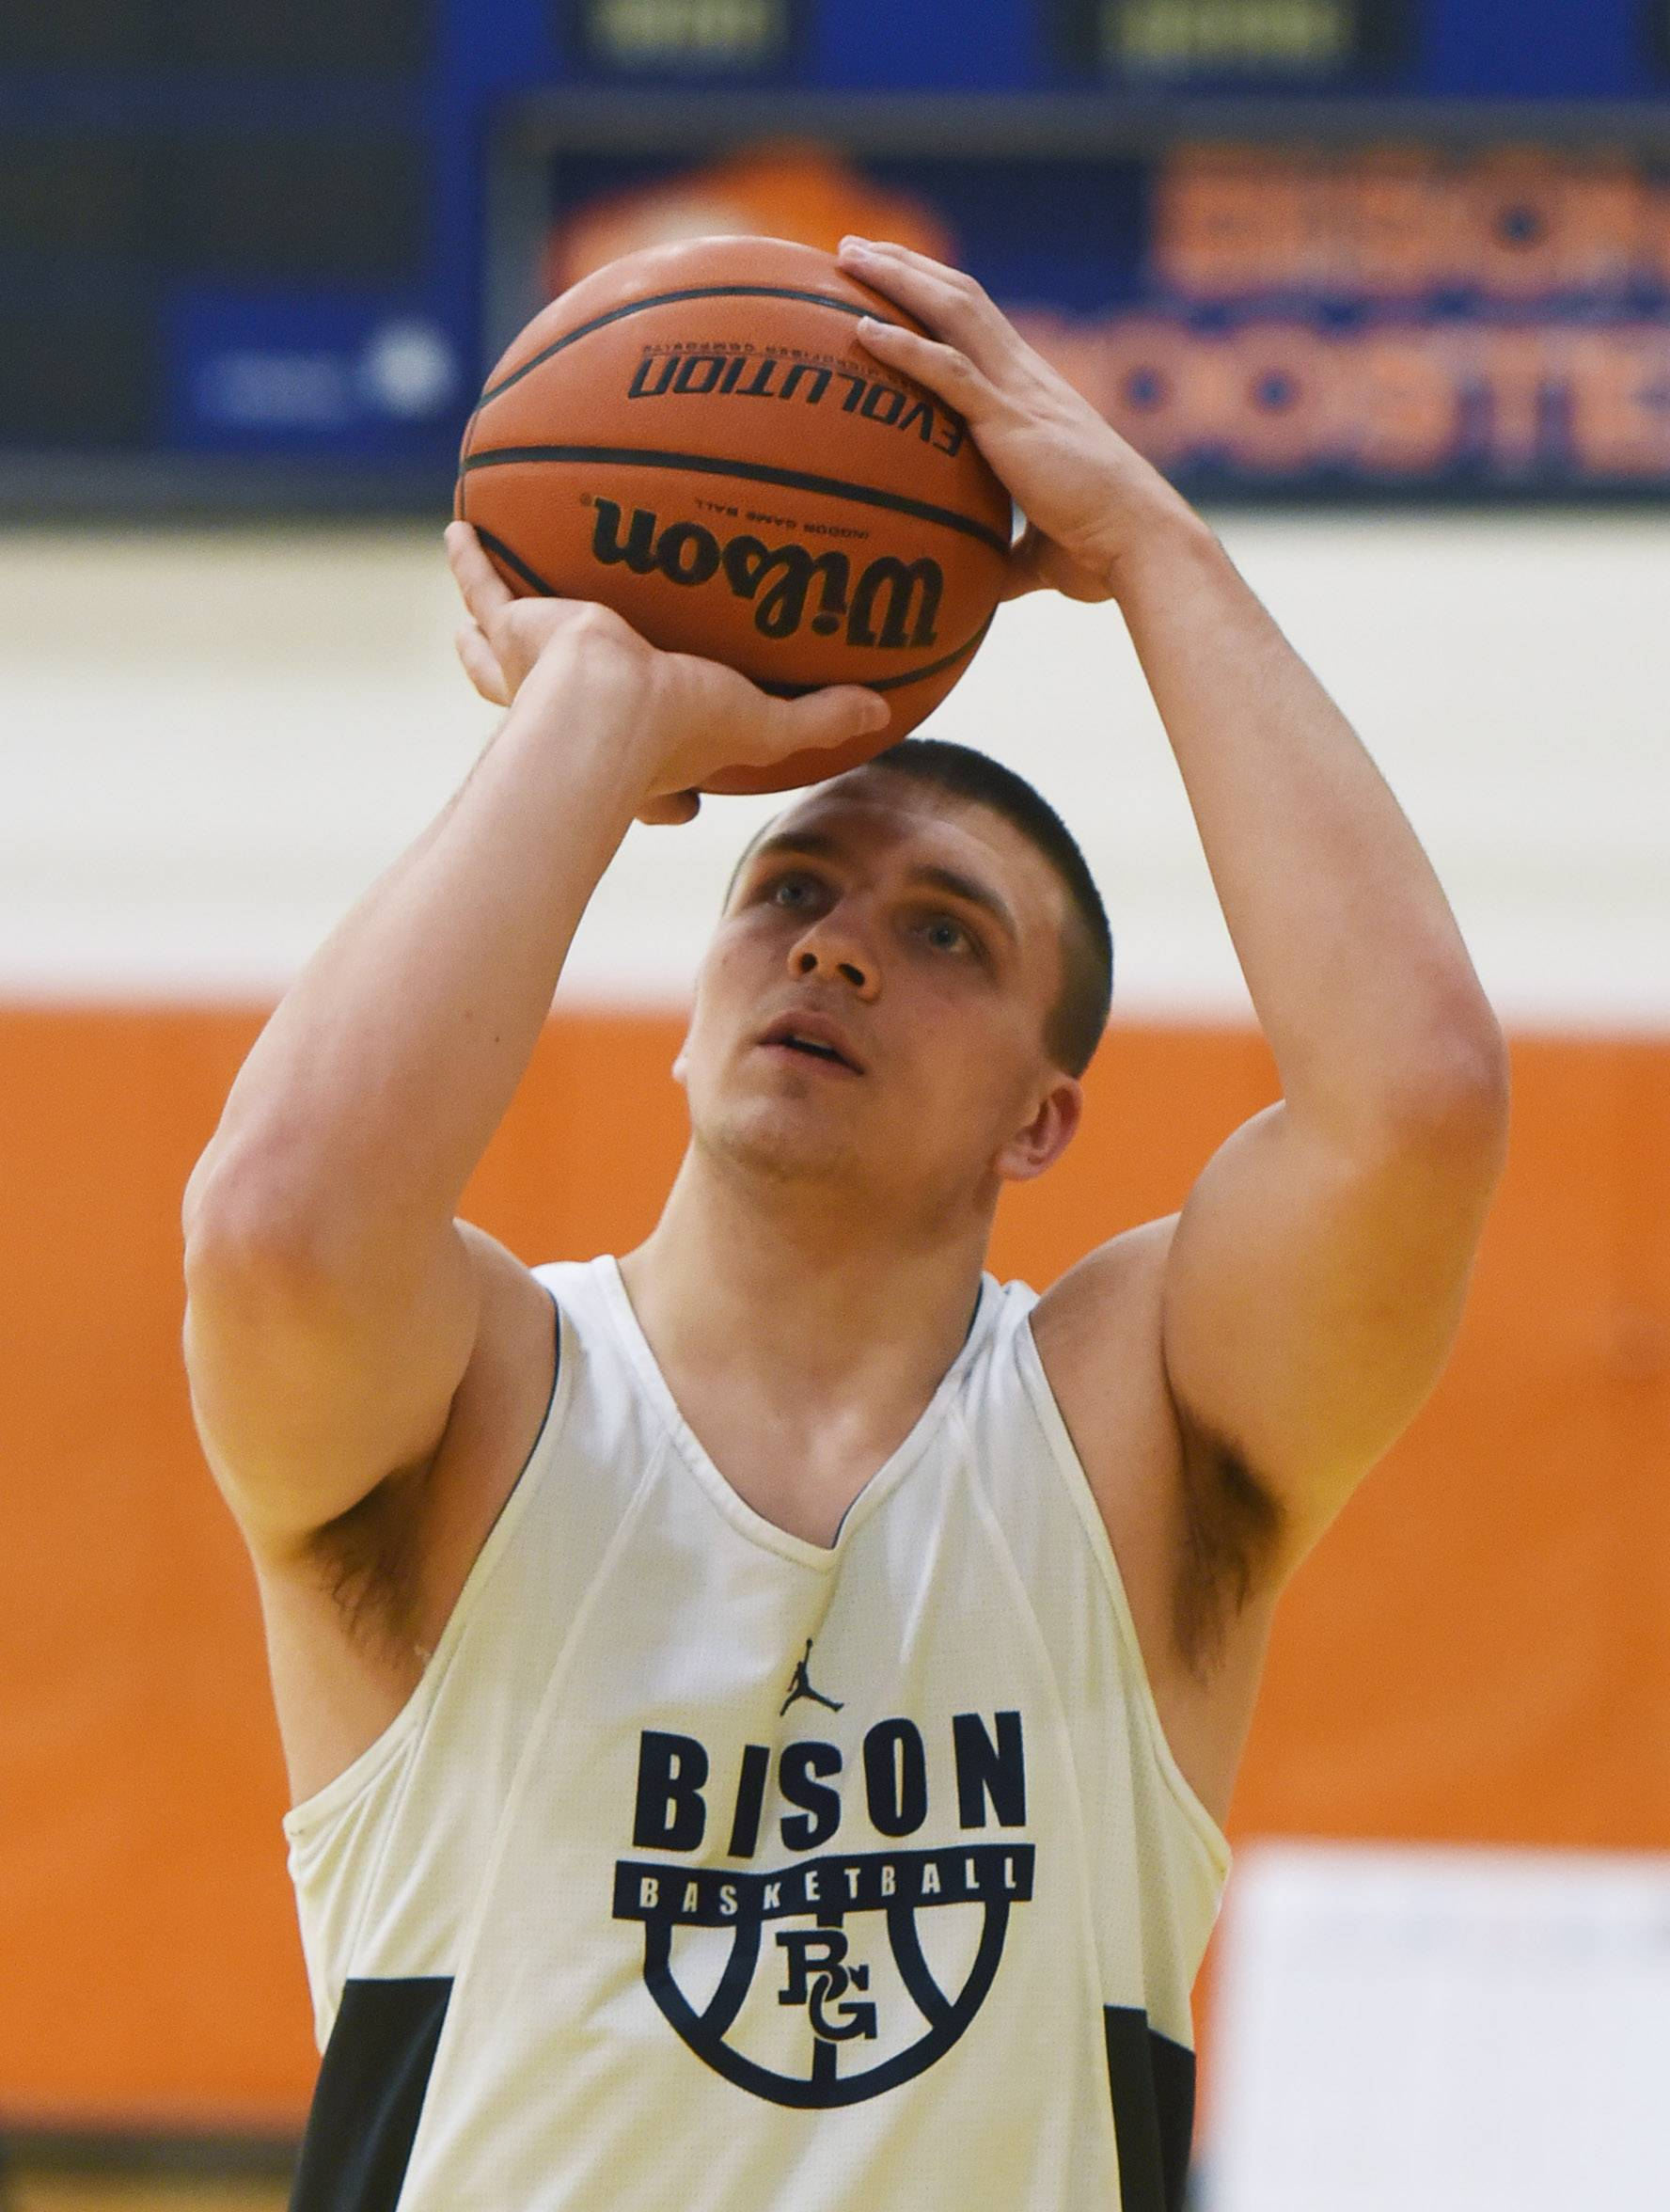 Buffalo Grove boys basketball player Tom Trieb participates in a shooting drill during practice.